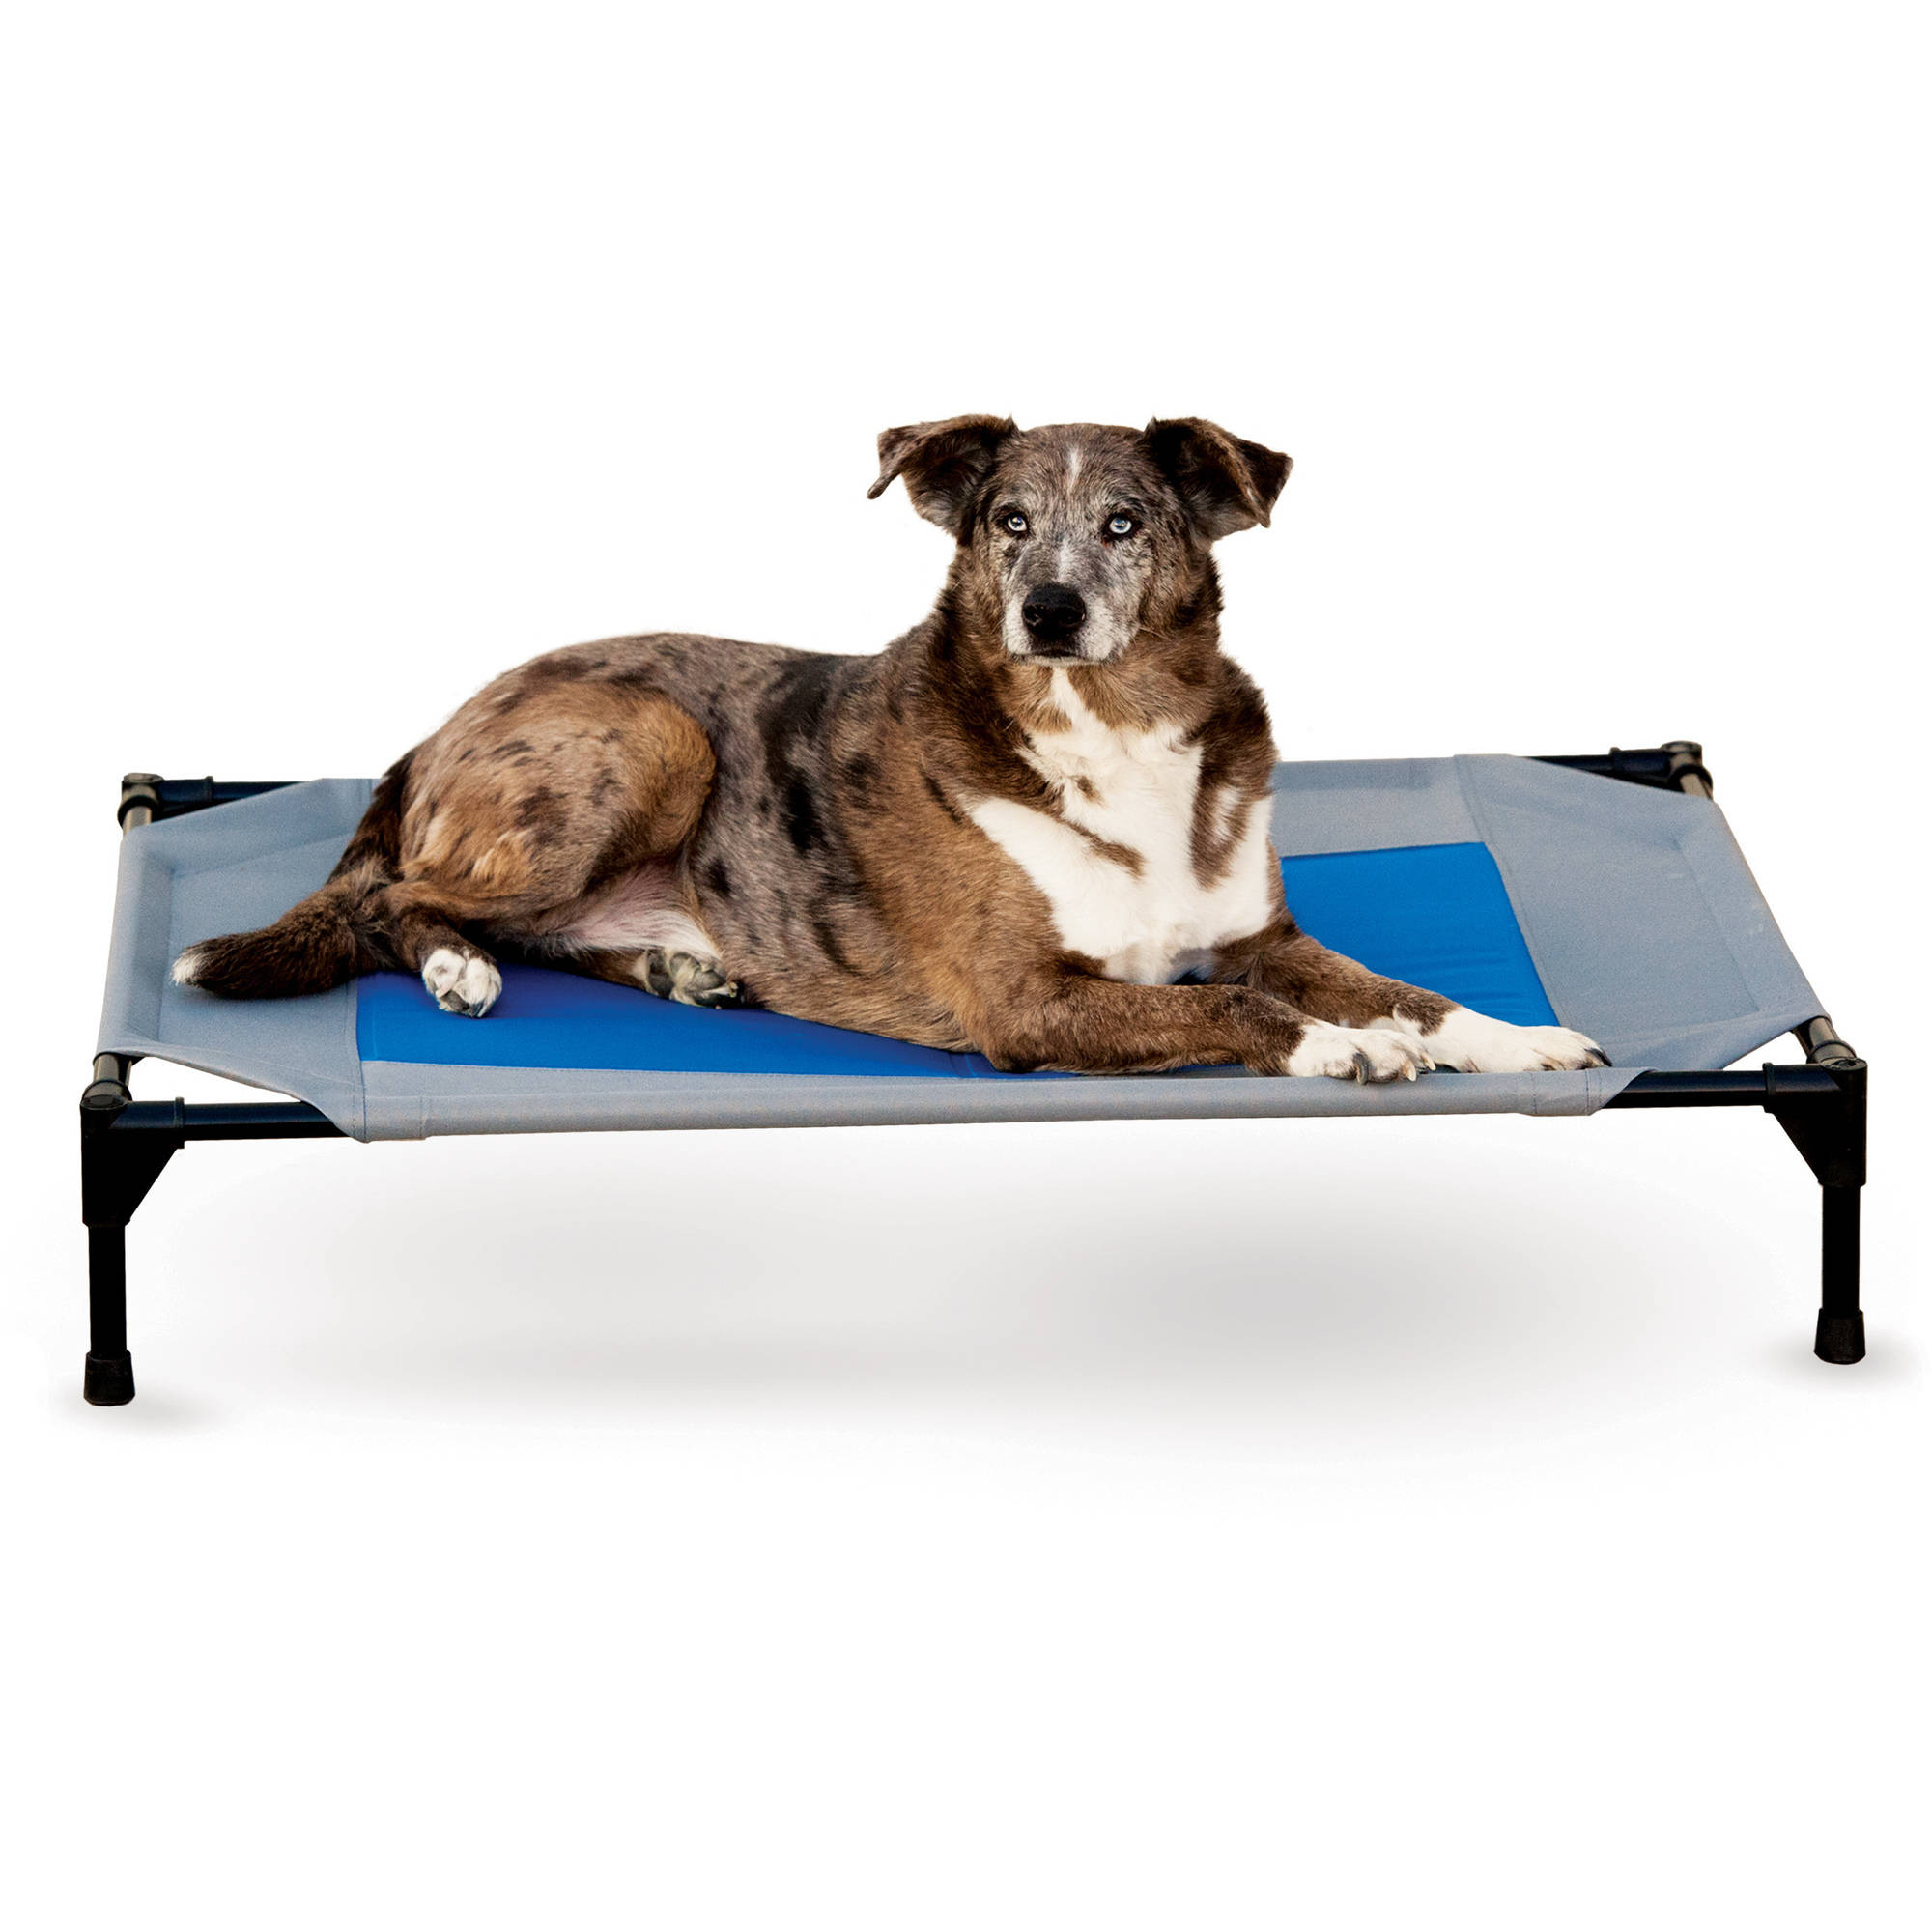 K&H Pet Products Coolin' Pet Cot, Large, Gray/Blue